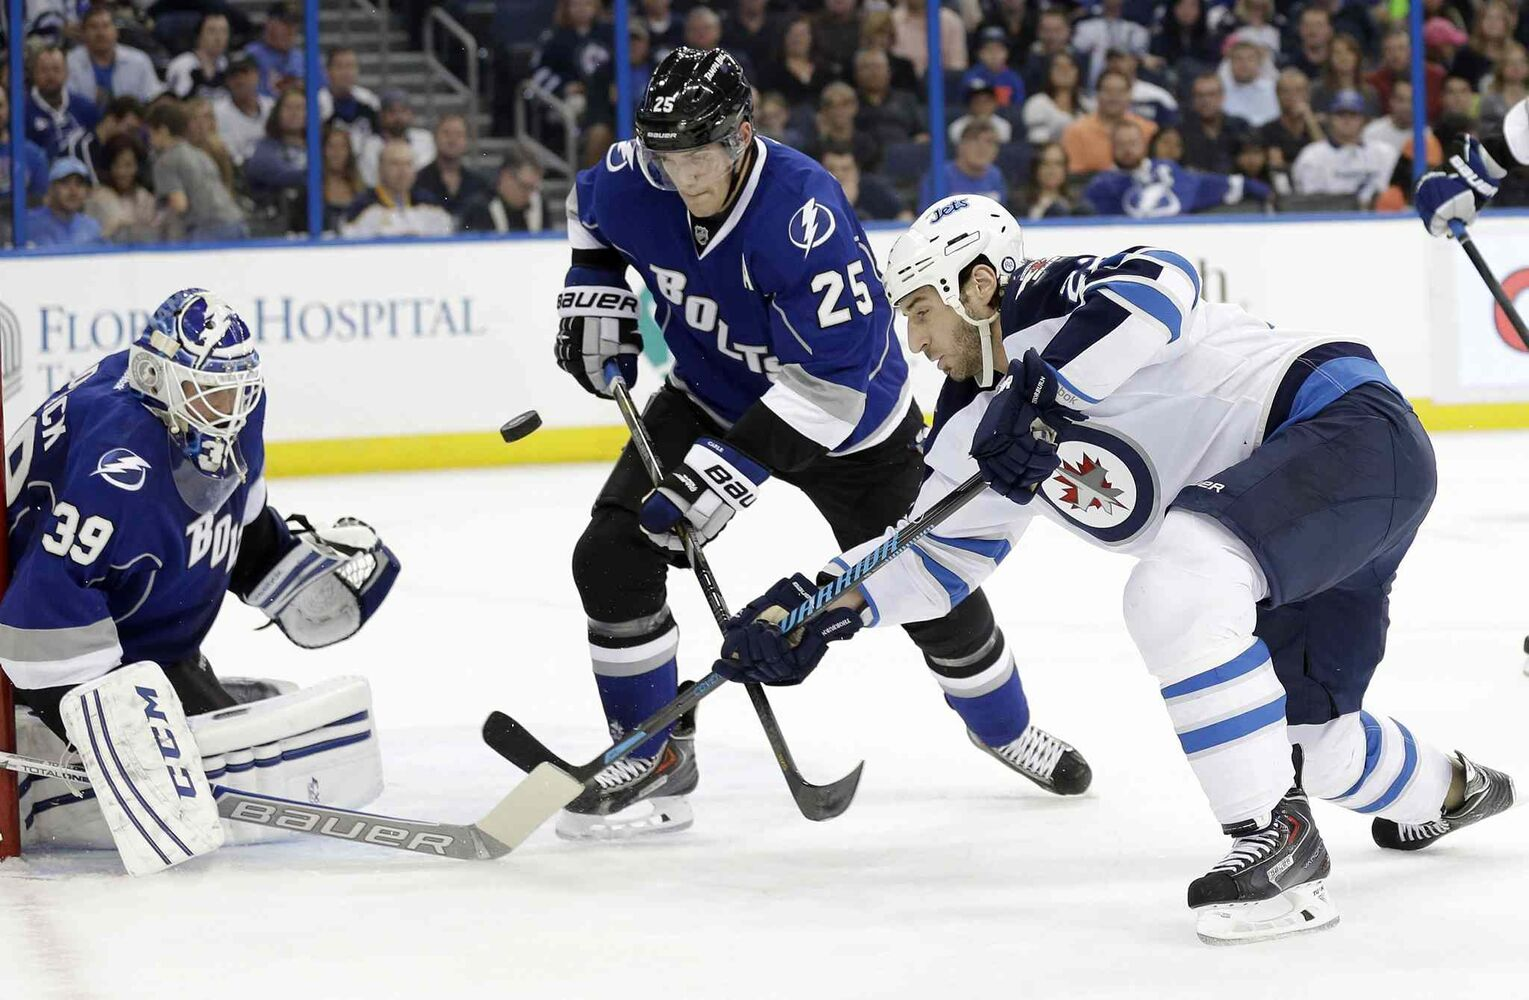 Winnipeg Jets winger Chris Thorburn (right) shoots on Tampa Bay Lightning goalie Anders Lindback (left) as Lightning defenceman Matt Carle moves in during the first period. (Chris O'Meara / The Associated Press)